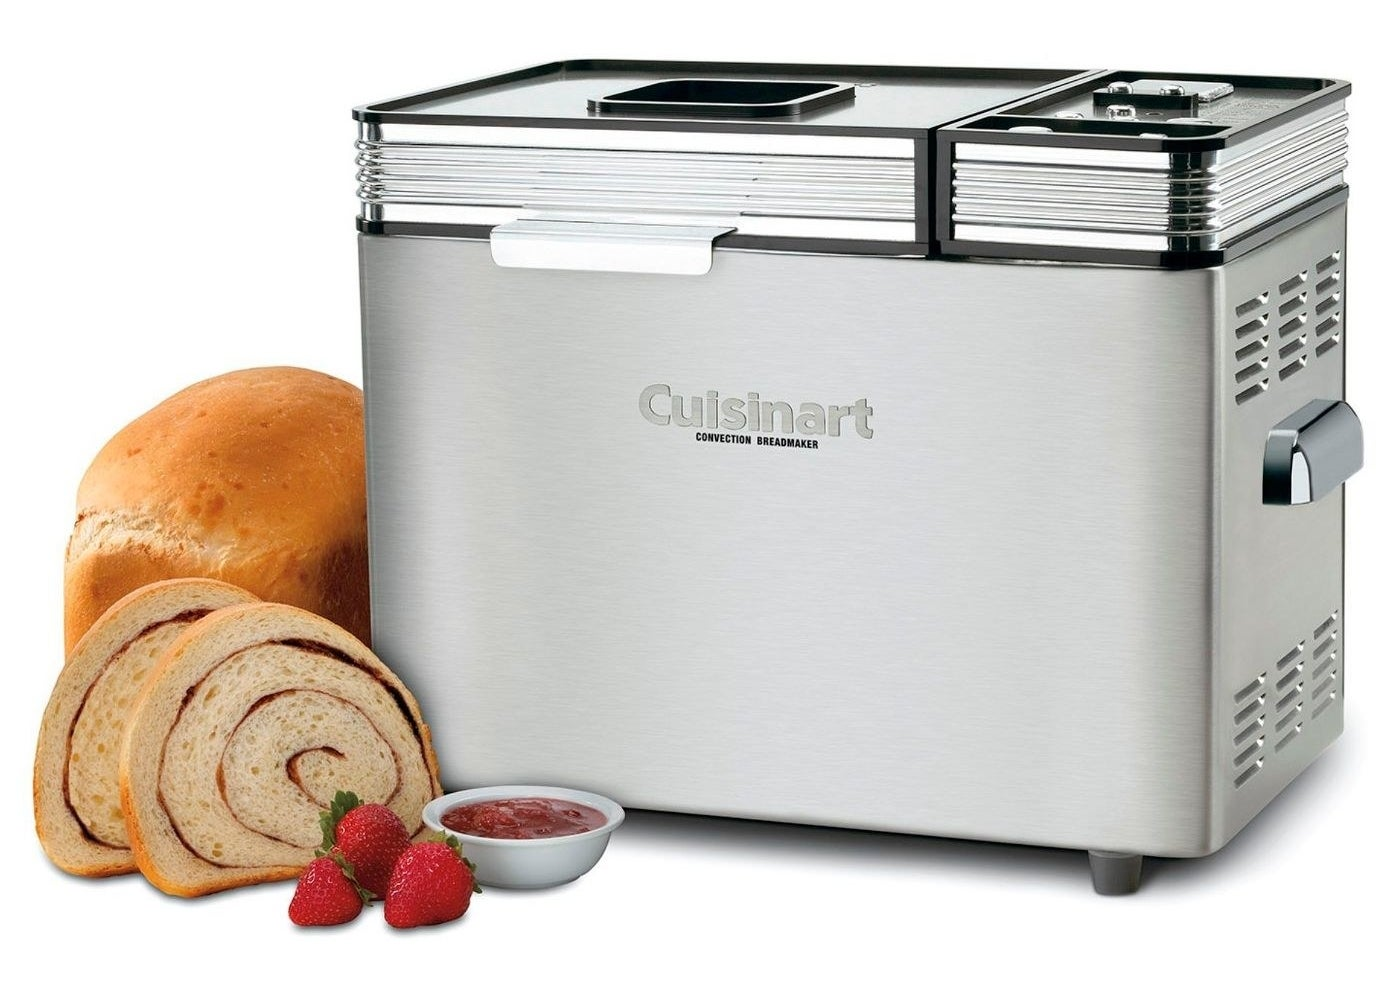 cuisinart bread maker with a swirl loaf sitting next to it